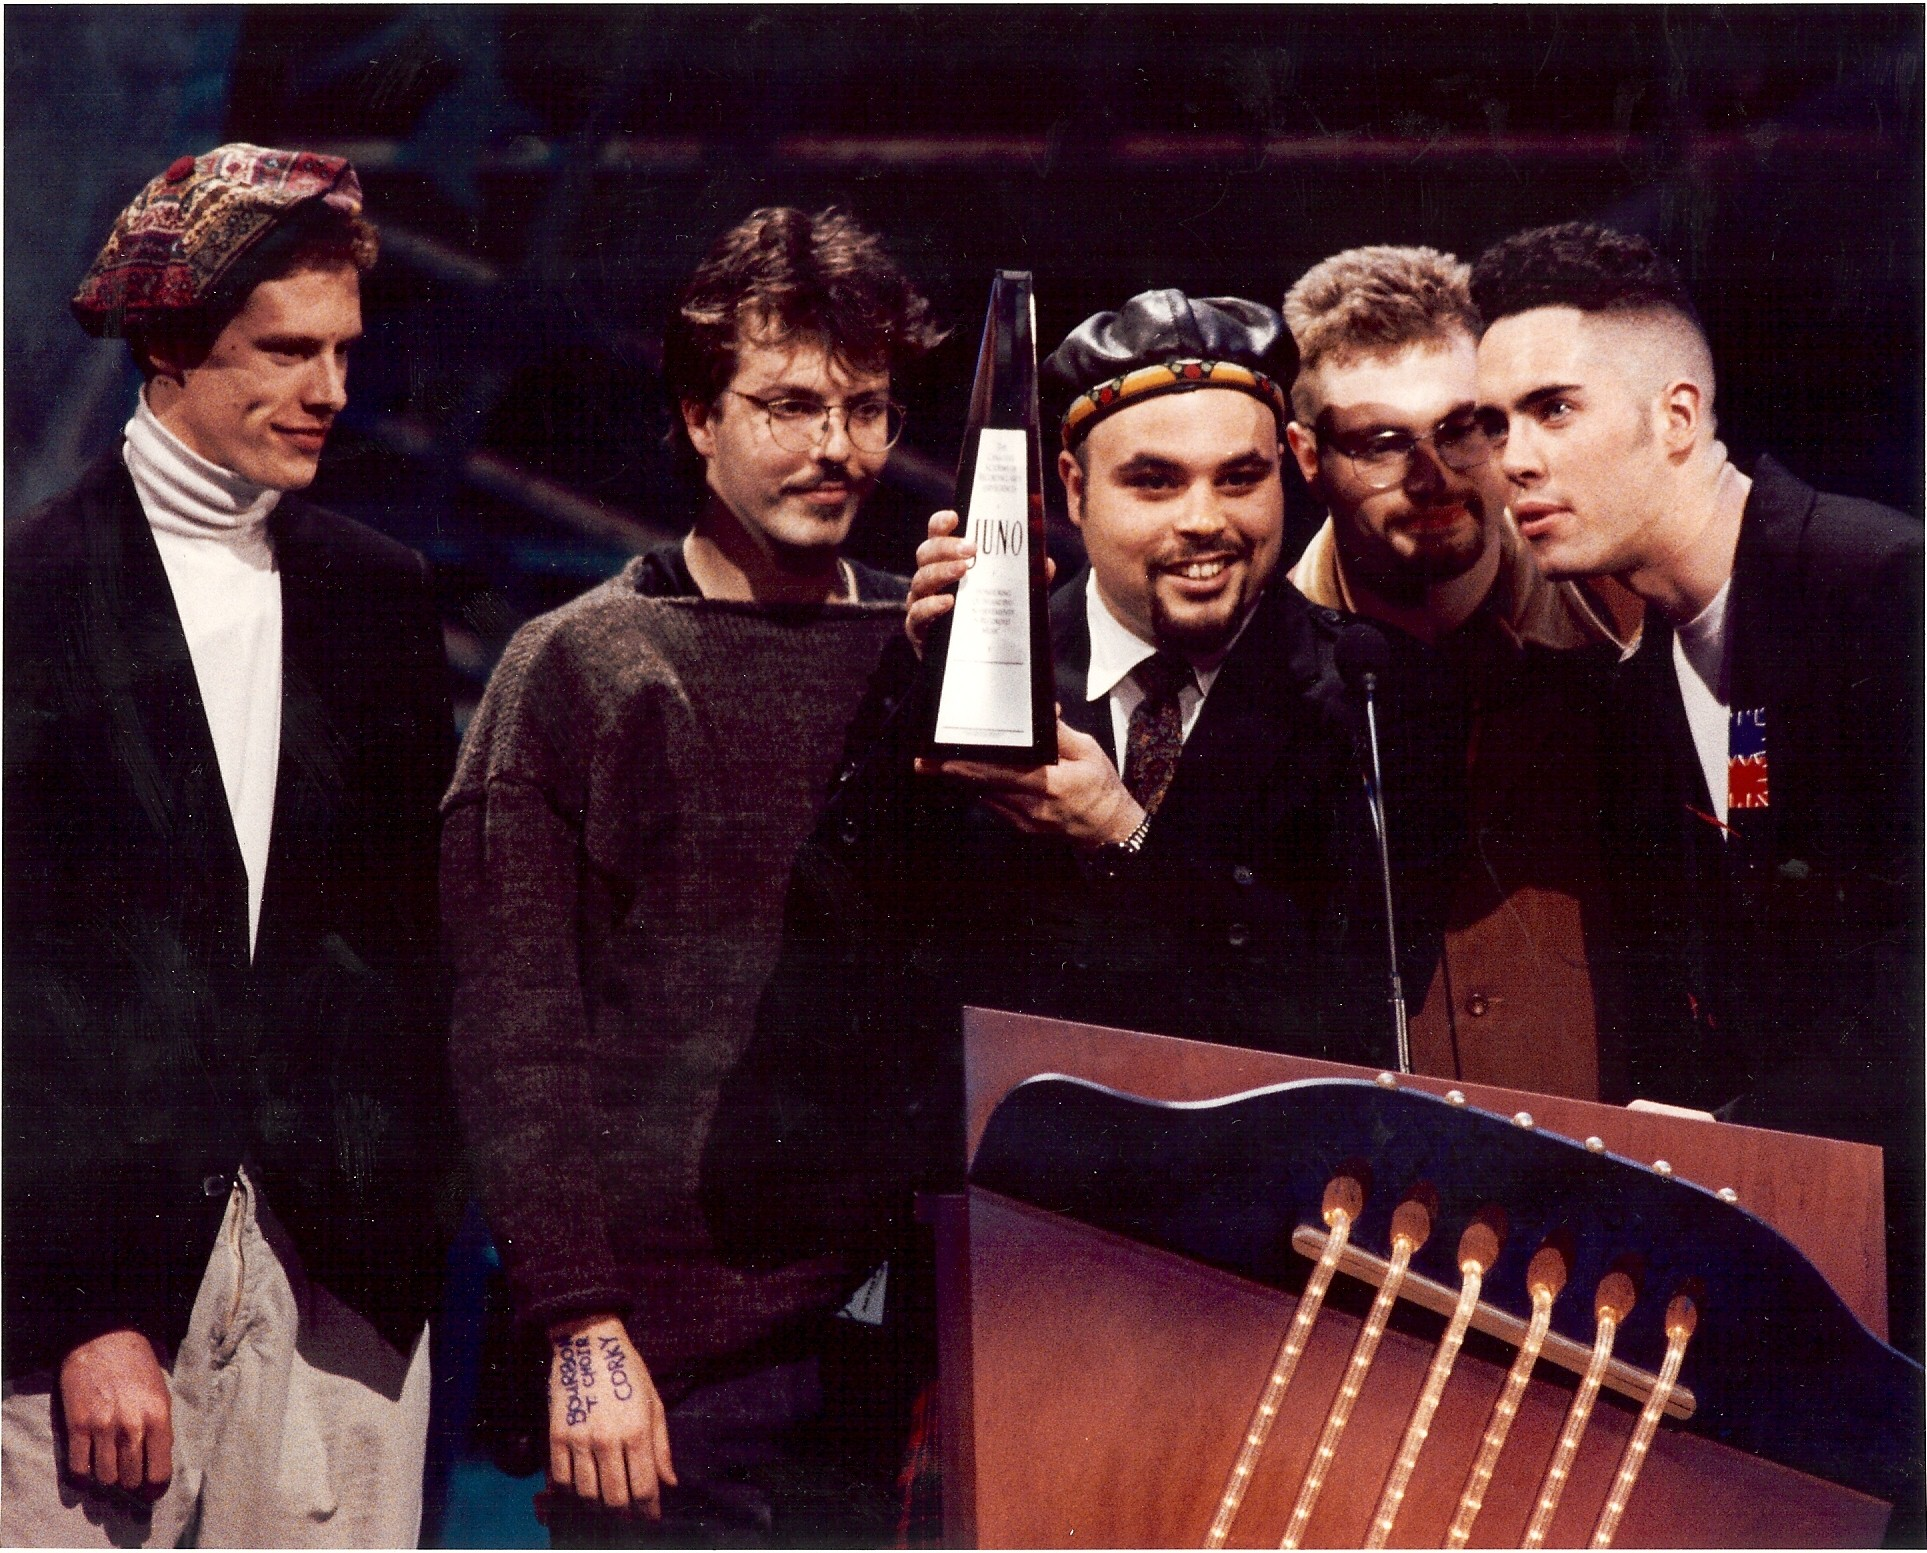 Blast from the past: The band collect their first Juno in 1993, winning Group of the Year. Credit: http://canadianmusichalloffame.ca